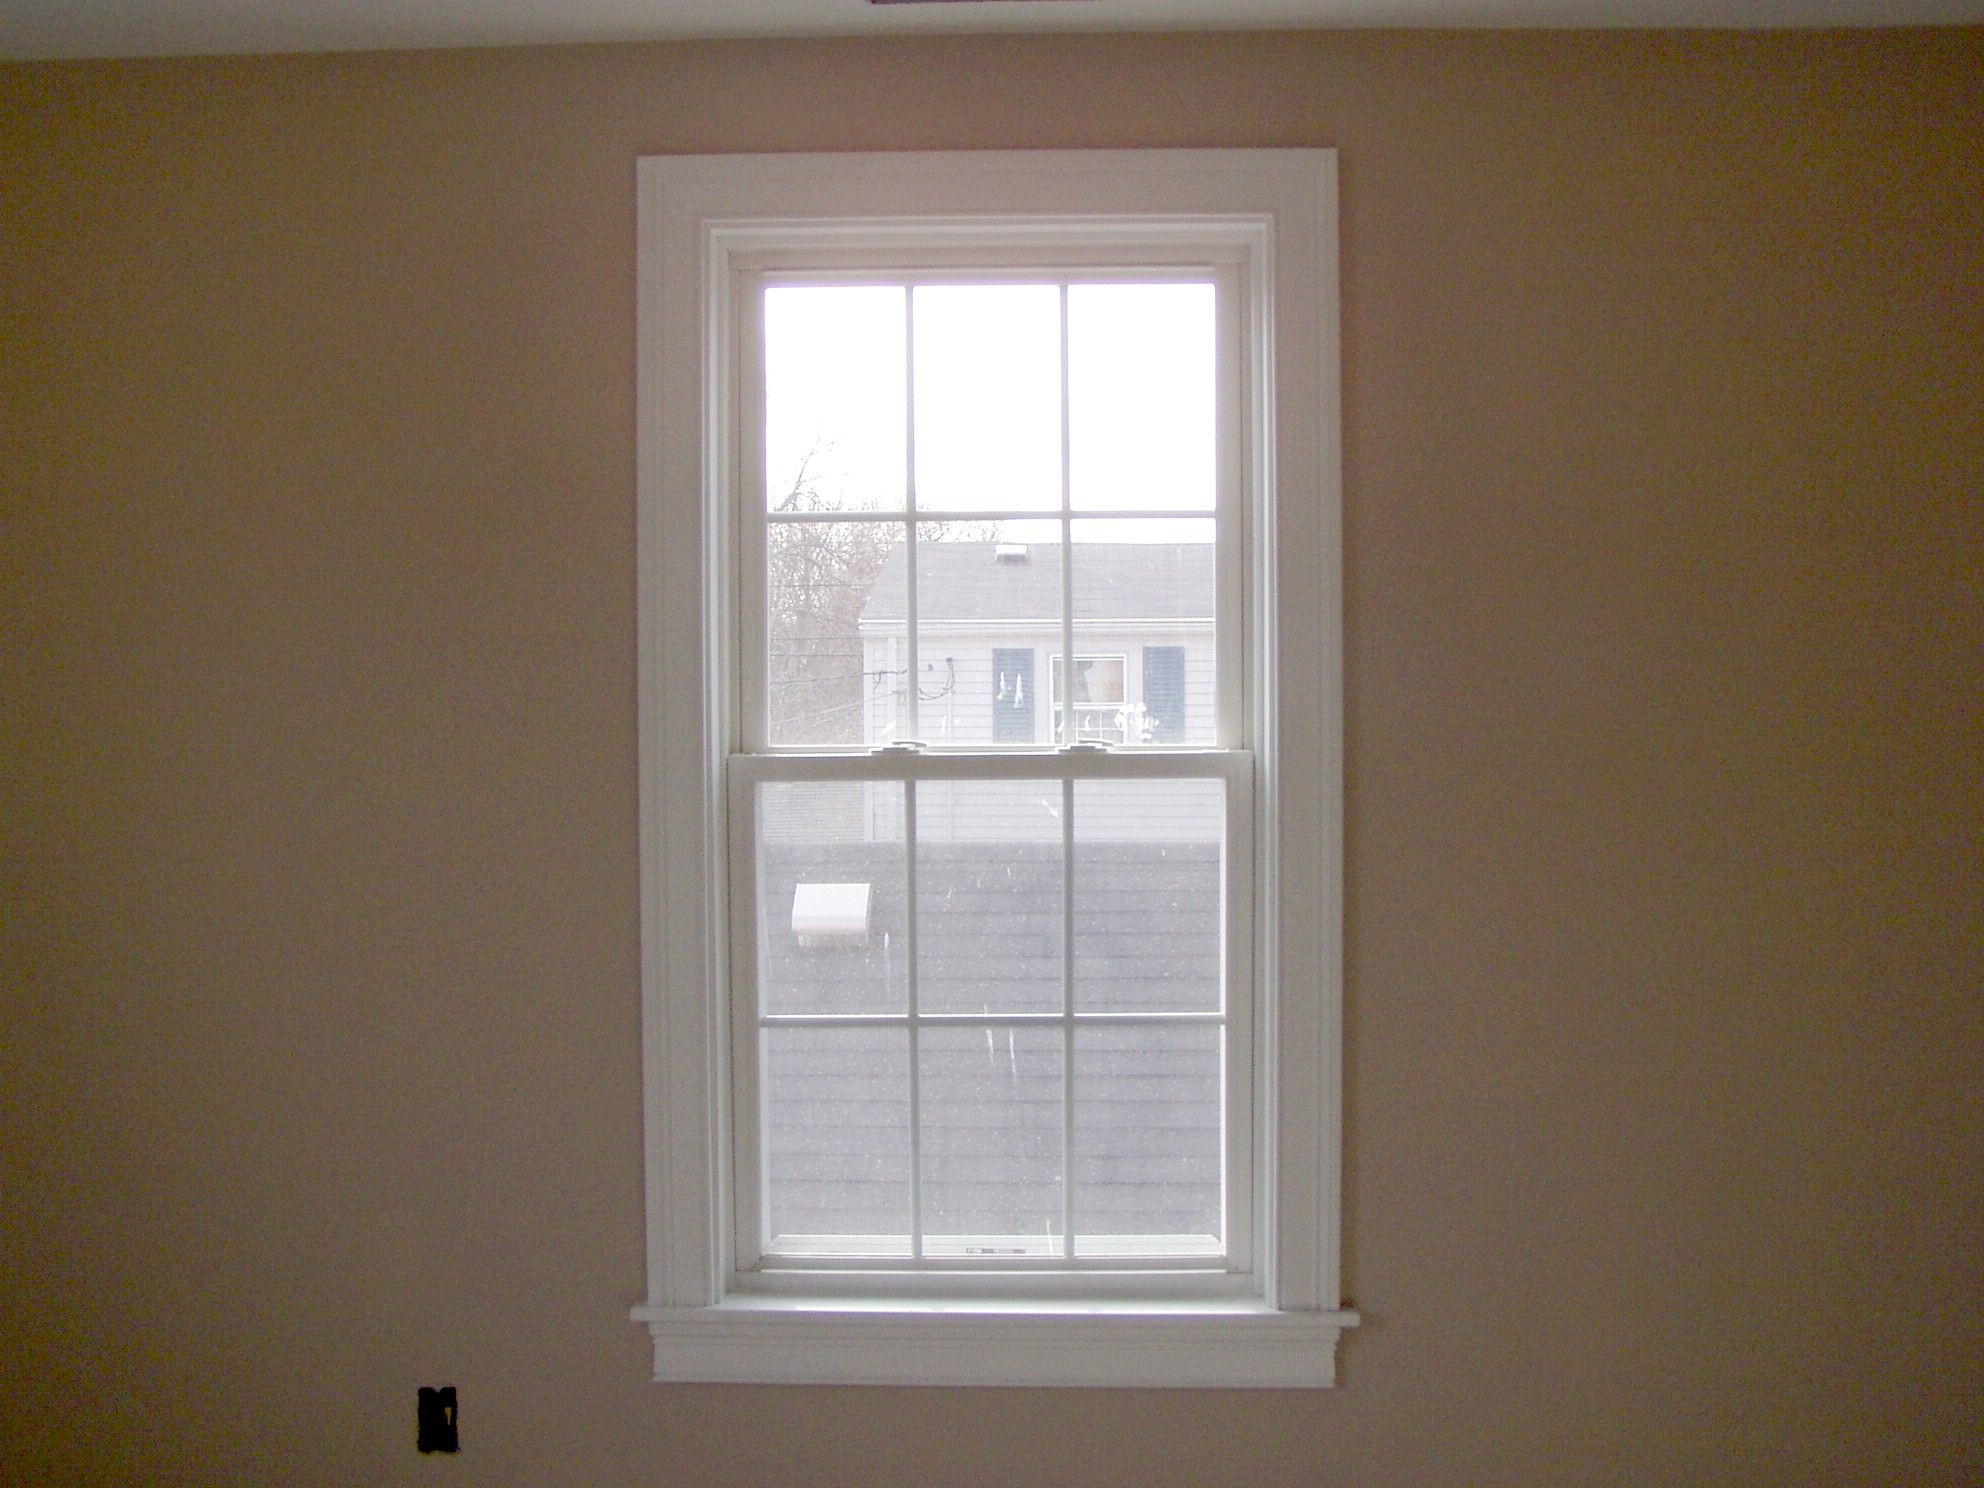 Wonderful 36027 Window Casing Ideas Window Trim Ideas Picture On Interior Design Ideas